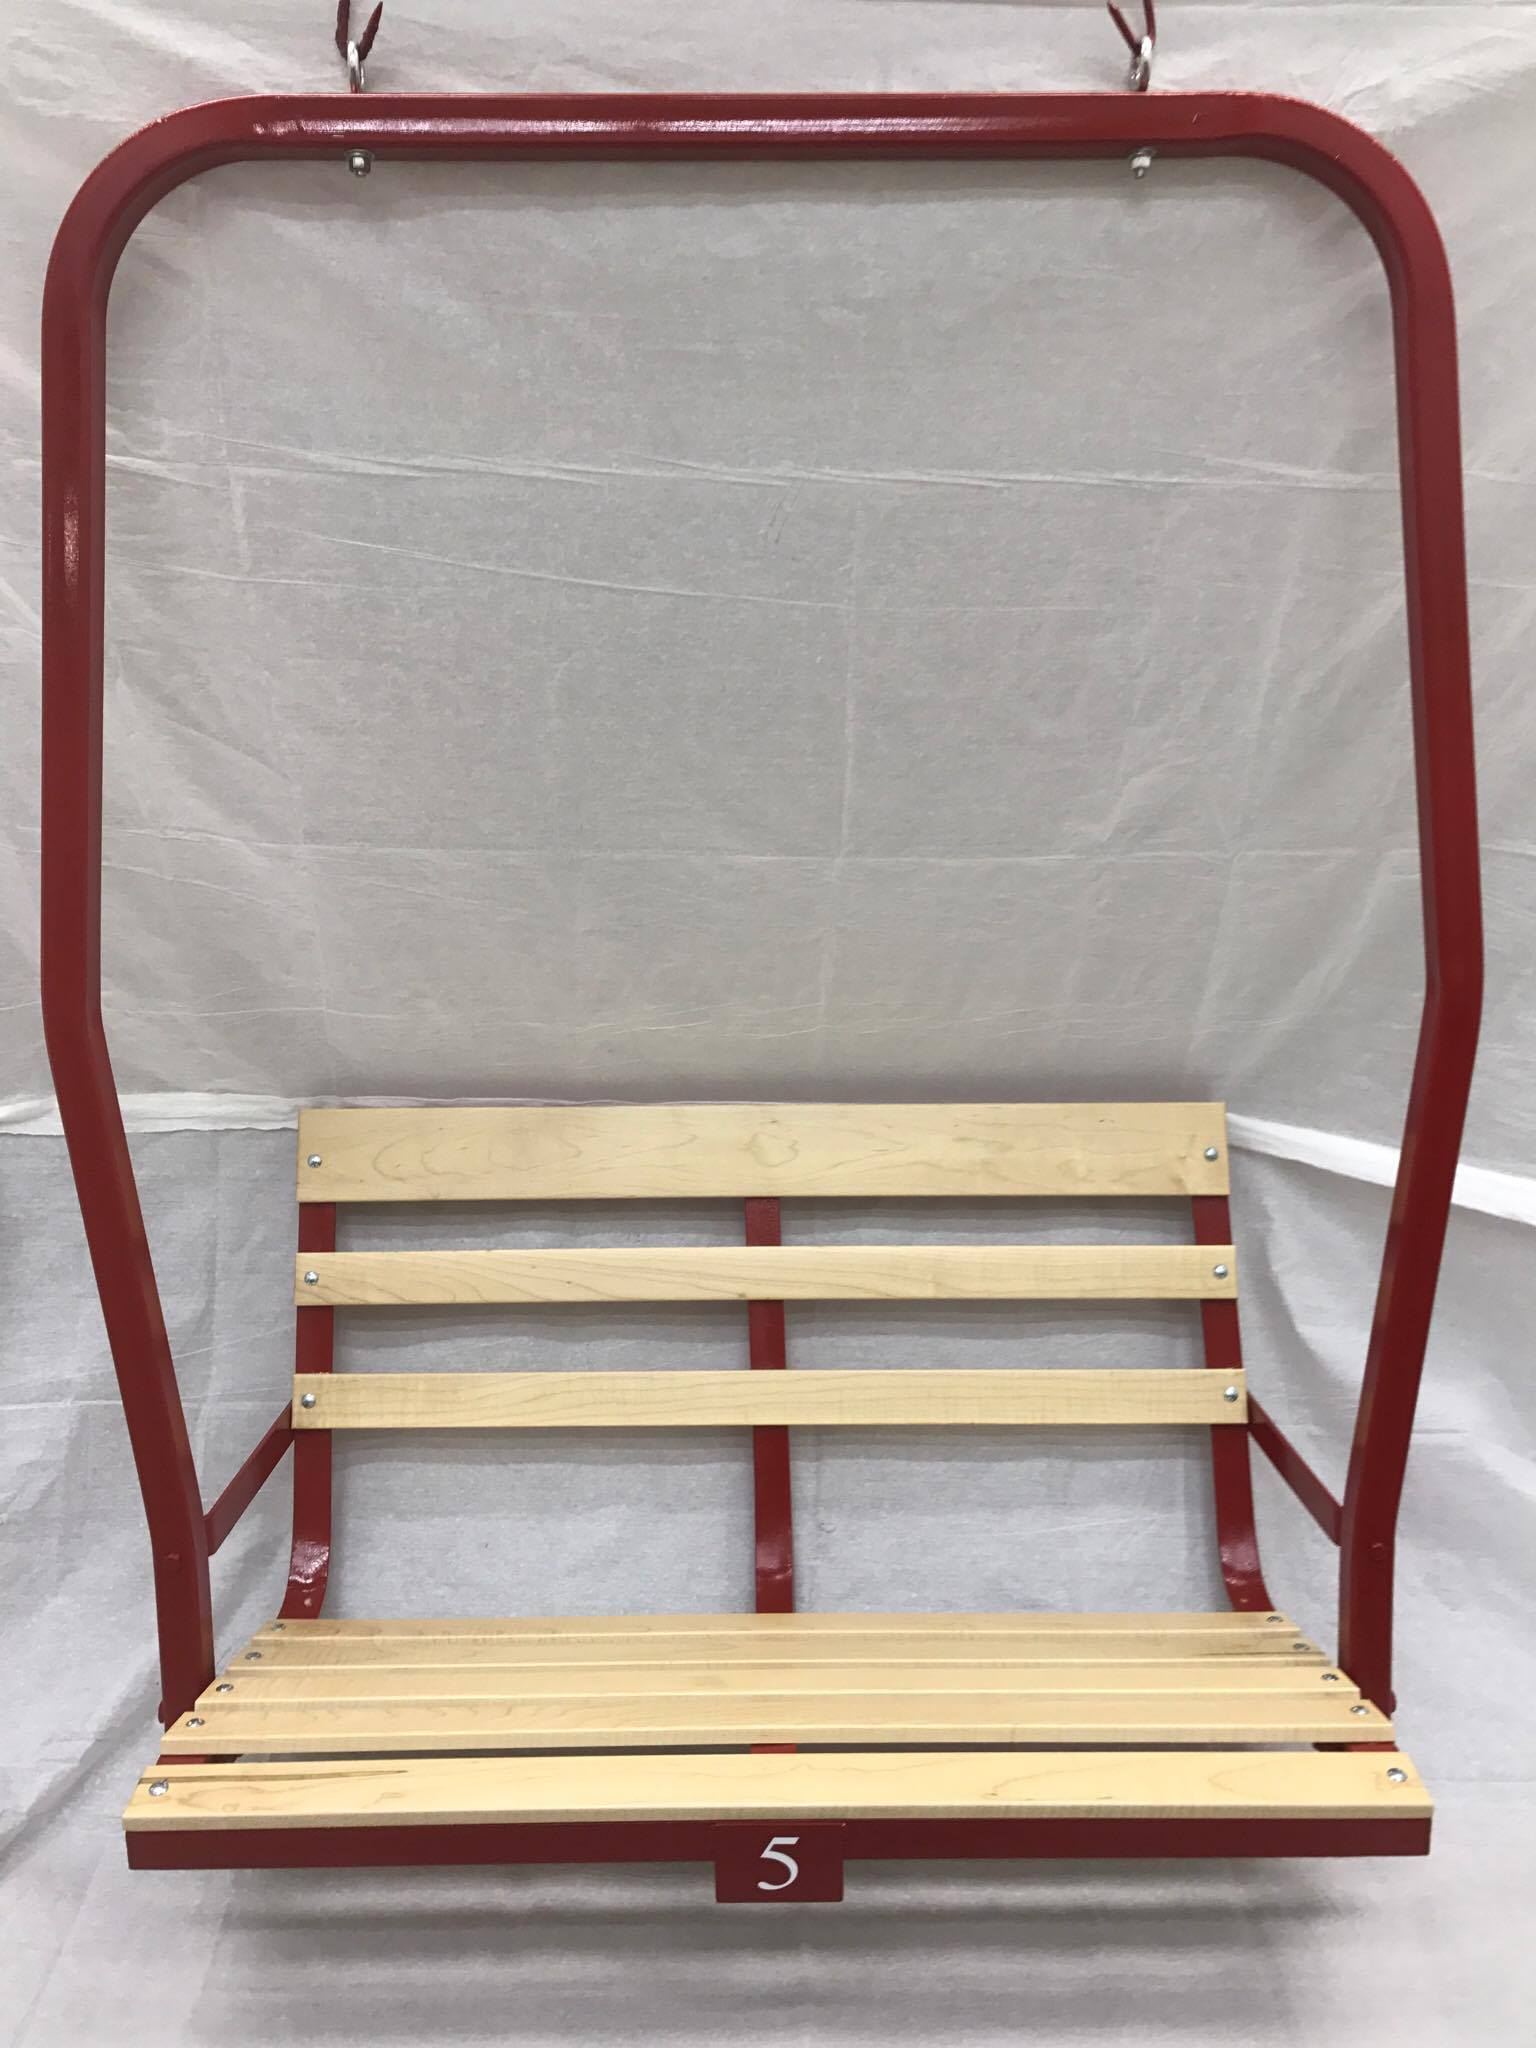 ski lift chairs for sale most comfortable desk chair chairlift swing custom hand made to order skichairlift com 18742500 878787132407 1679583540 o